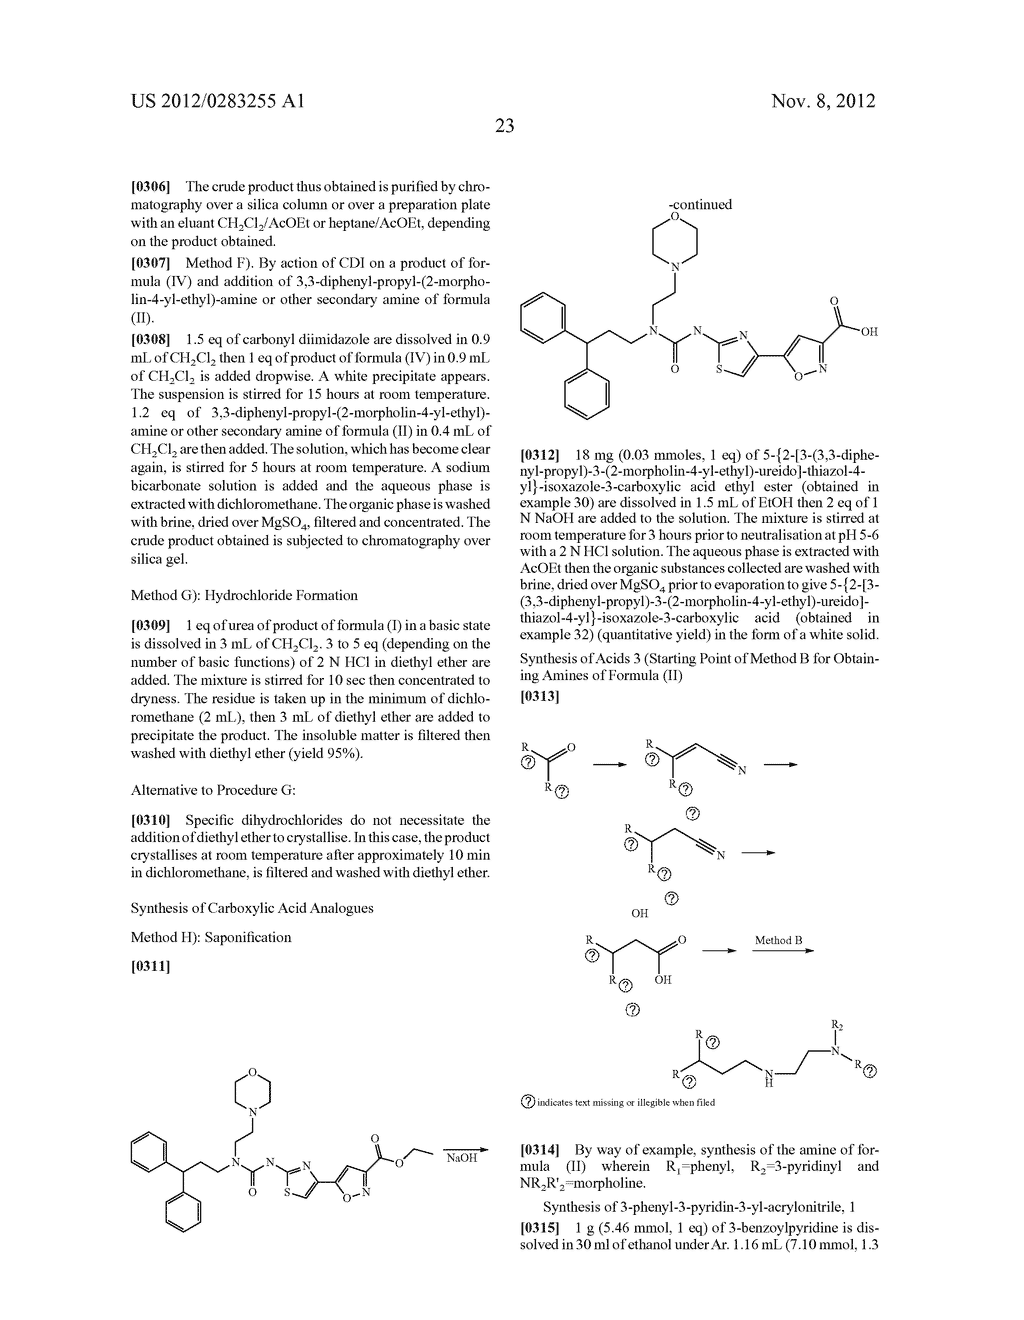 UREA DERIVATIVES, METHODS FOR THEIR MANUFACTURE, AND USES THEREFOR - diagram, schematic, and image 24